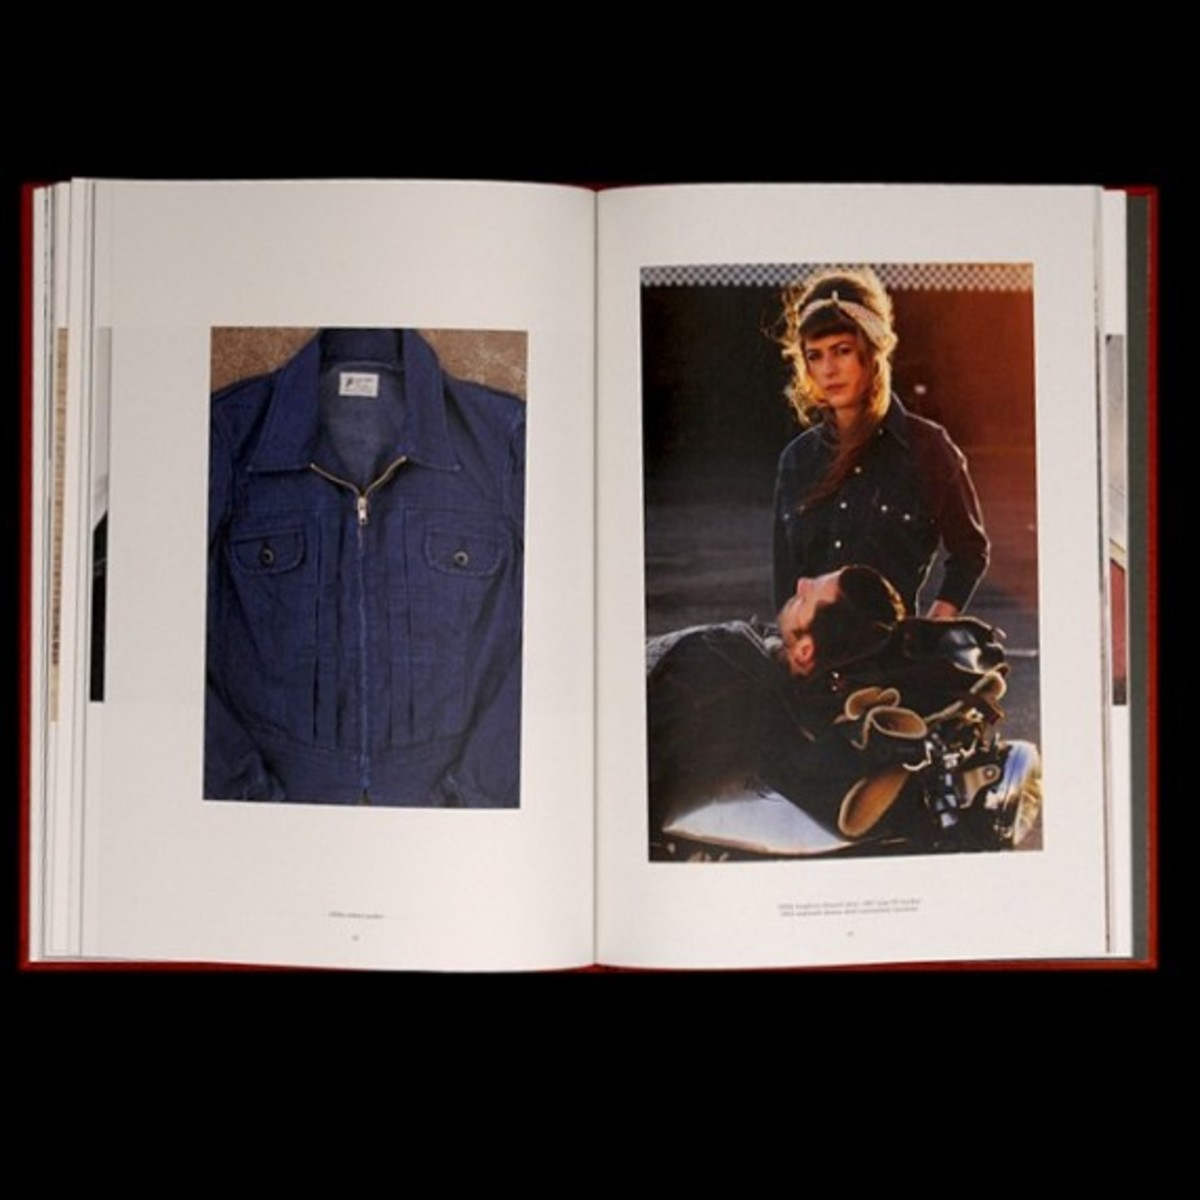 levis-vintage-clothing-fallwinter-2012-collection-lookbook-printed-edition-8